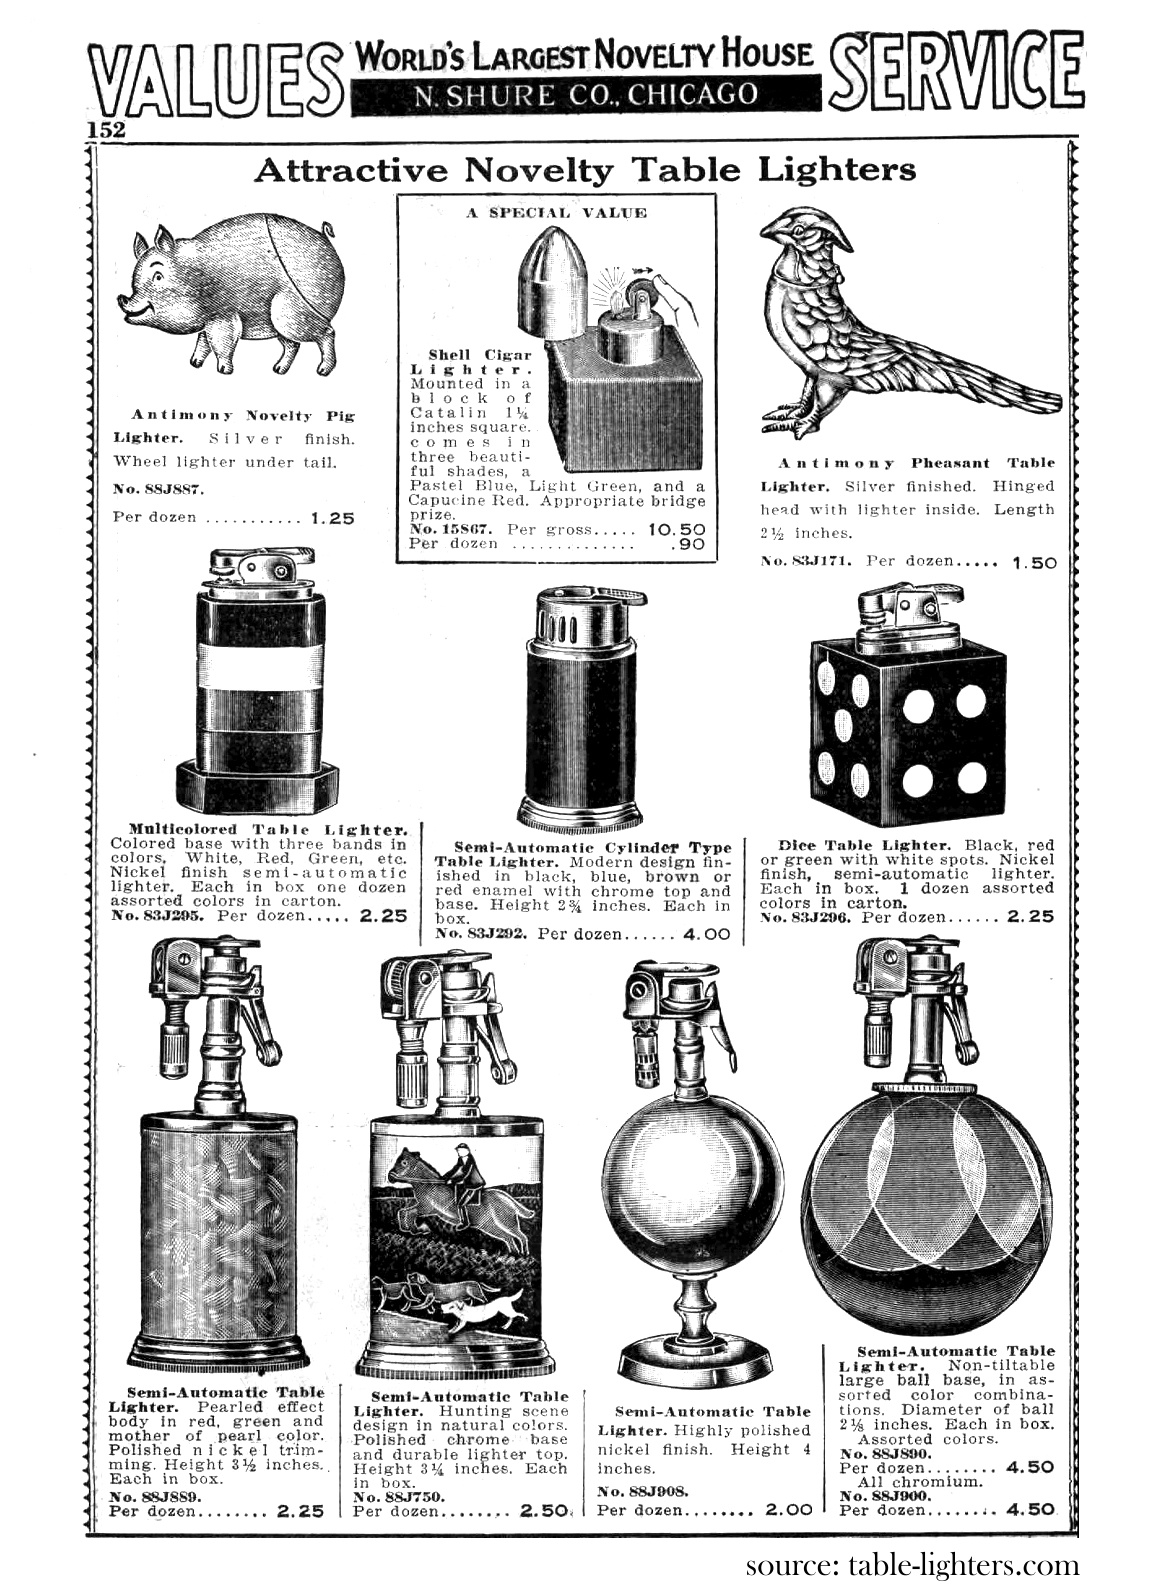 Table lighters collectors' guide: Mail Order Catalog, N